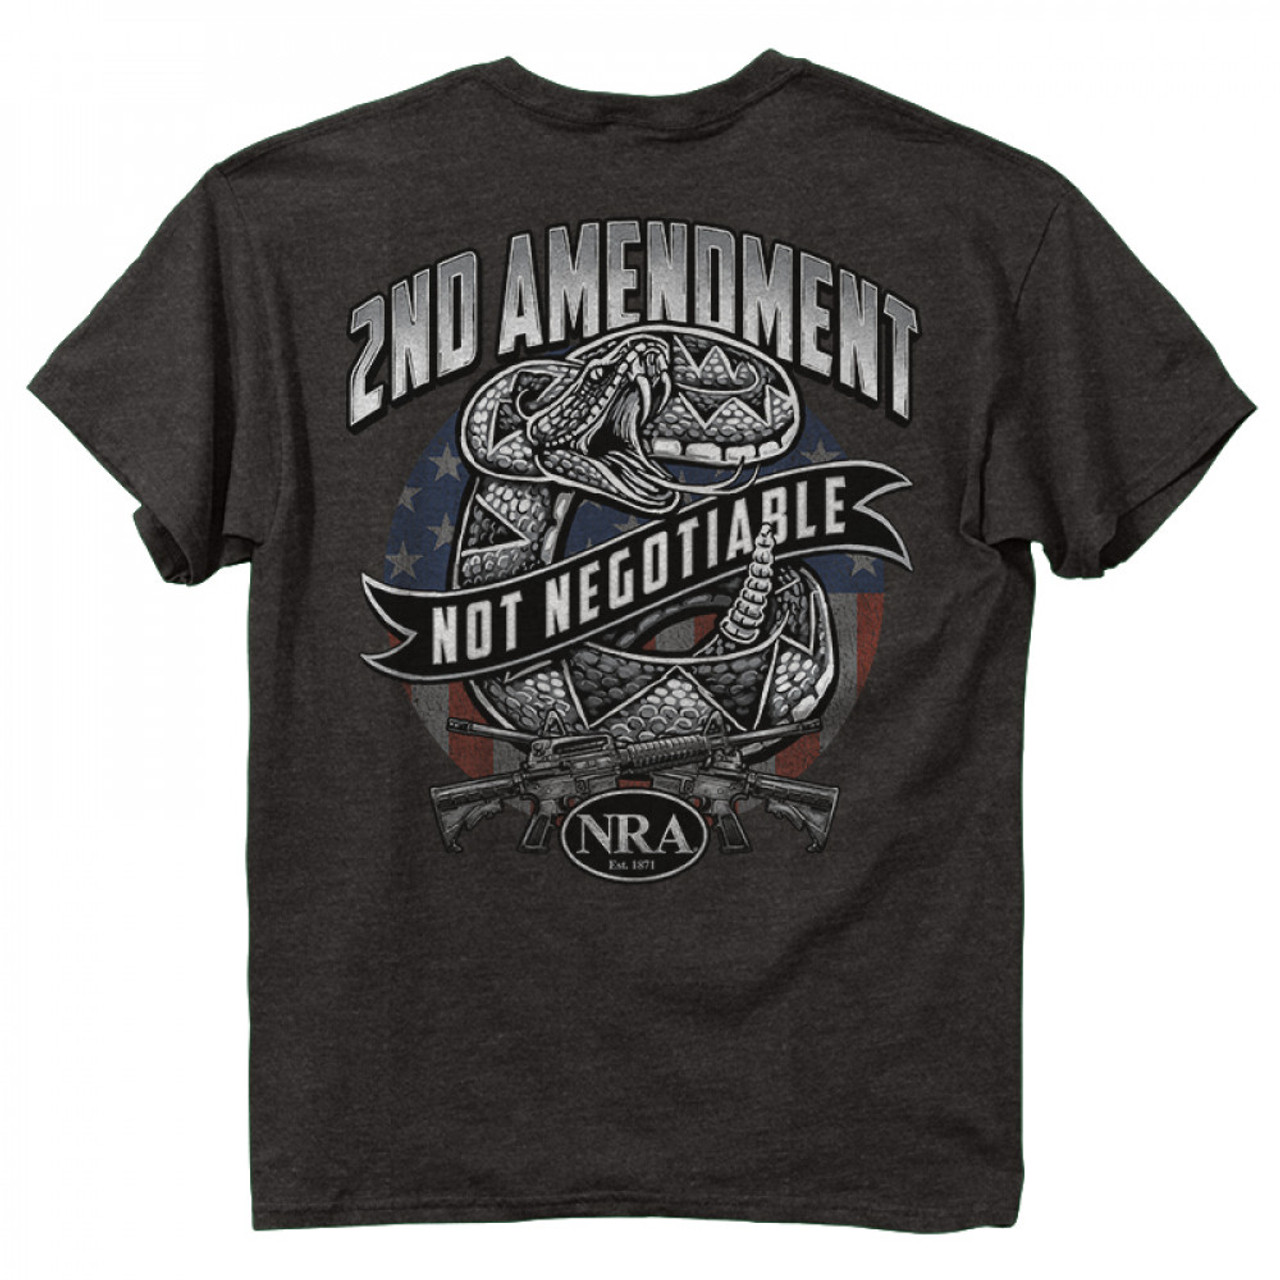 (NRA - 2nd Snake)  •Heavyweight 6oz. 100% Preshrunk-cotton-tees.. •Short set-in sleeves and a two needle hem around the sleeves and bottom •Comfort cut for maximum maneuverability •Double stitched seamless collar, taped neck and Shoulders •High Quality screen printed artwork that will withstand hundreds of washes